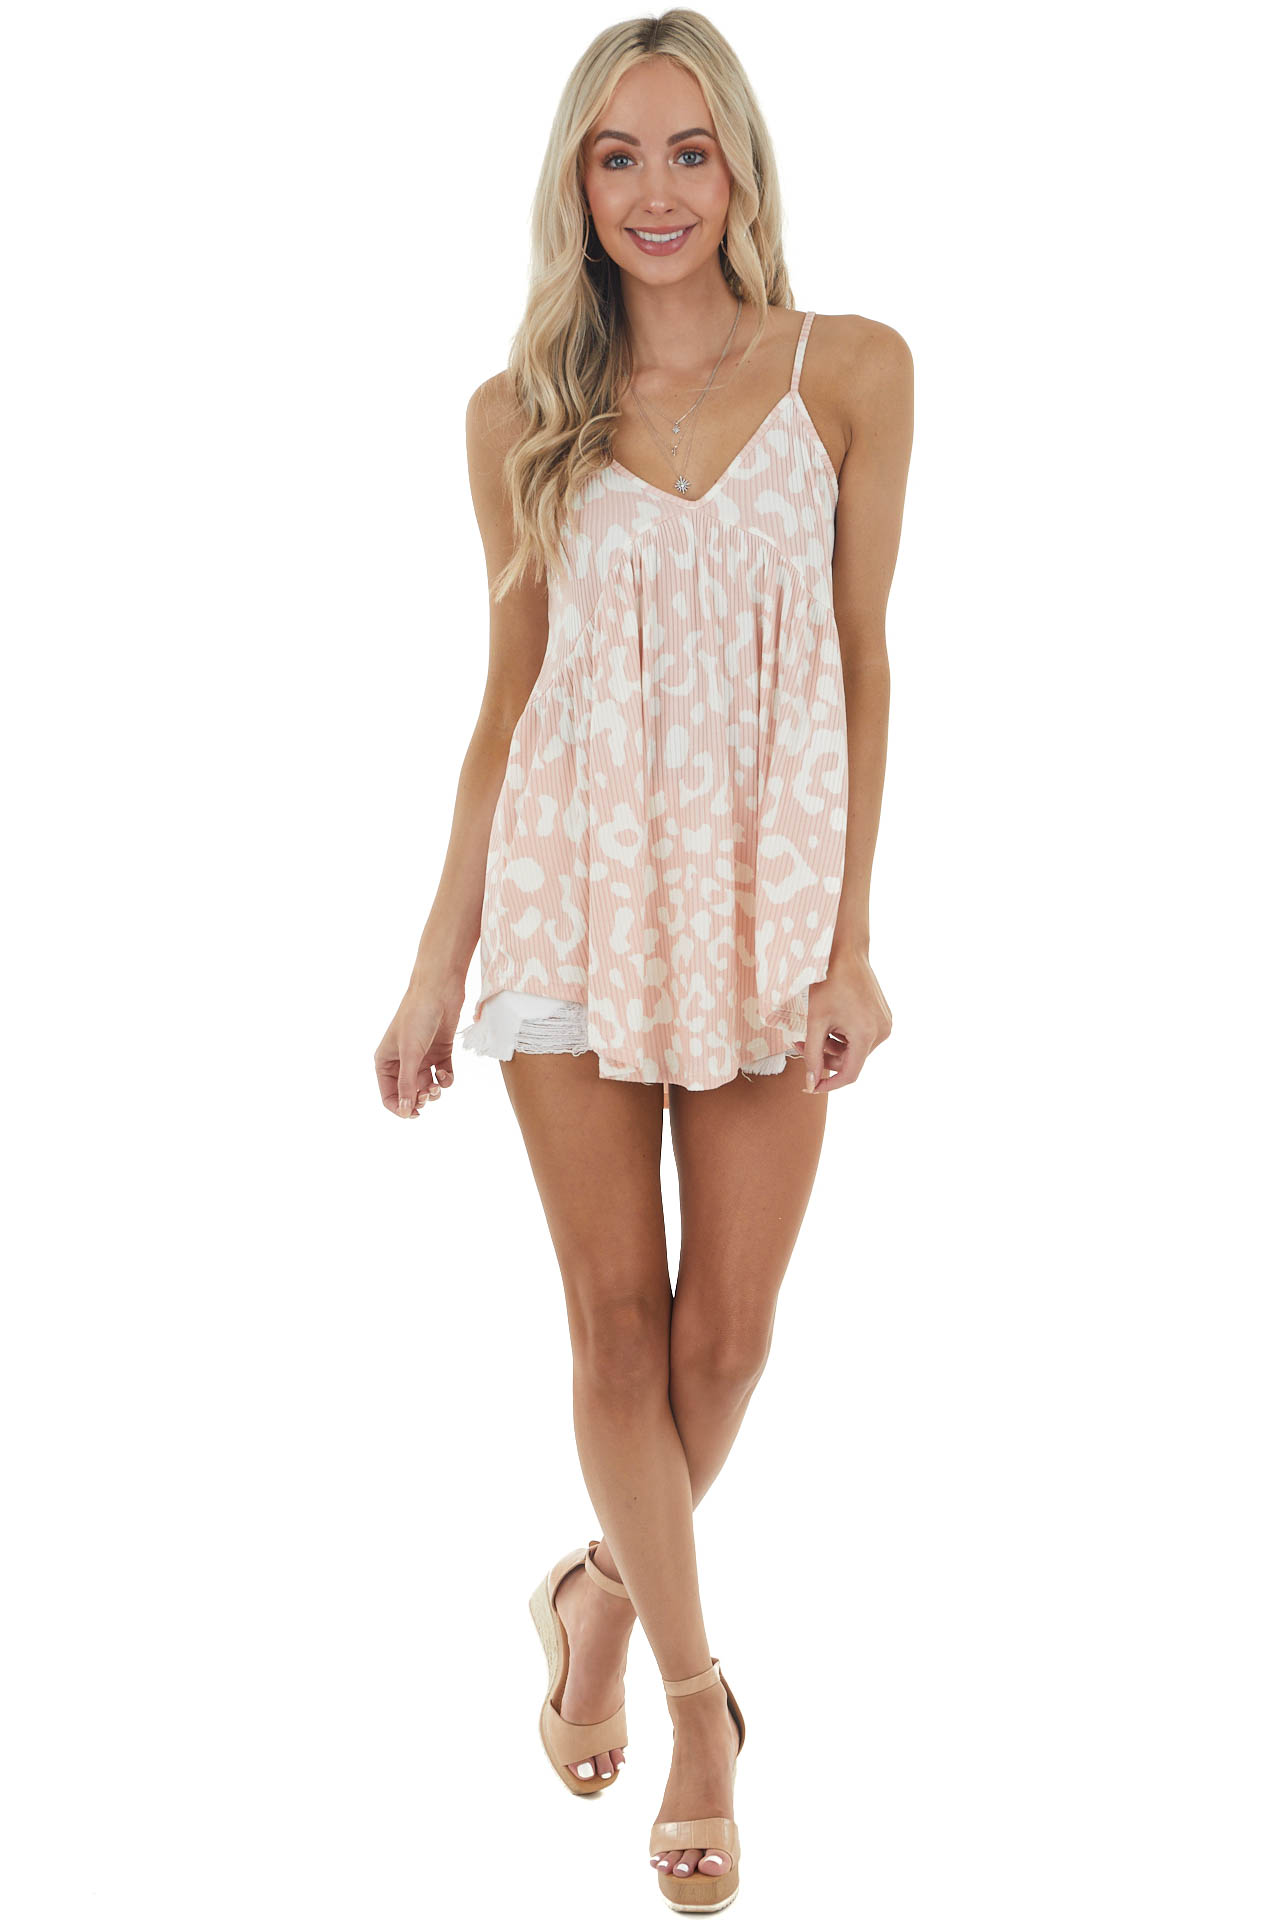 Carnation Leopard Print Baby Doll Ribbed Knit Tank Top